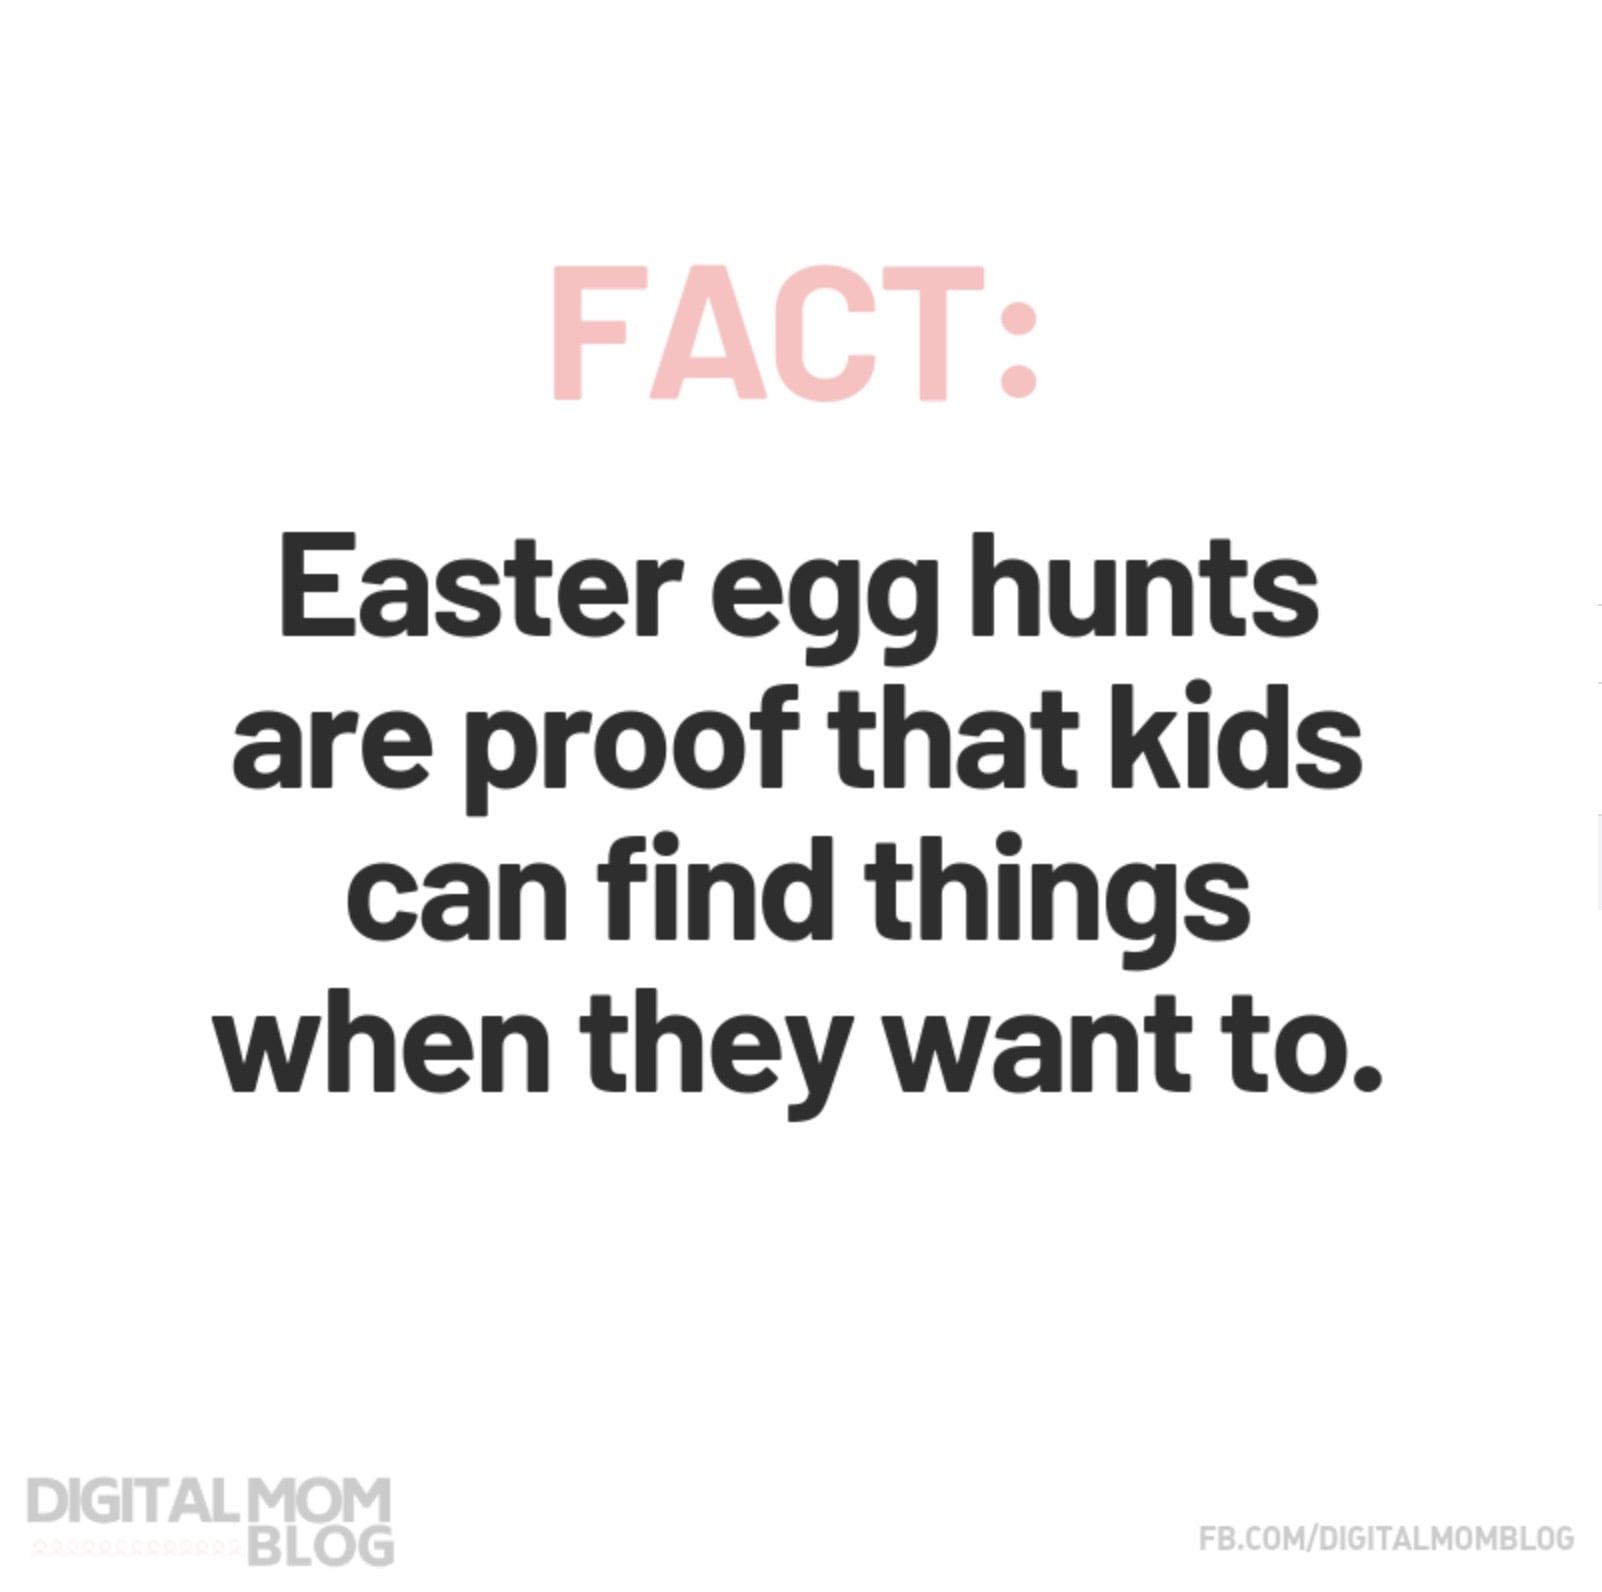 FACT: Easter egg hunts are proof that kids can find things when they want to. - Funny Easter Memes